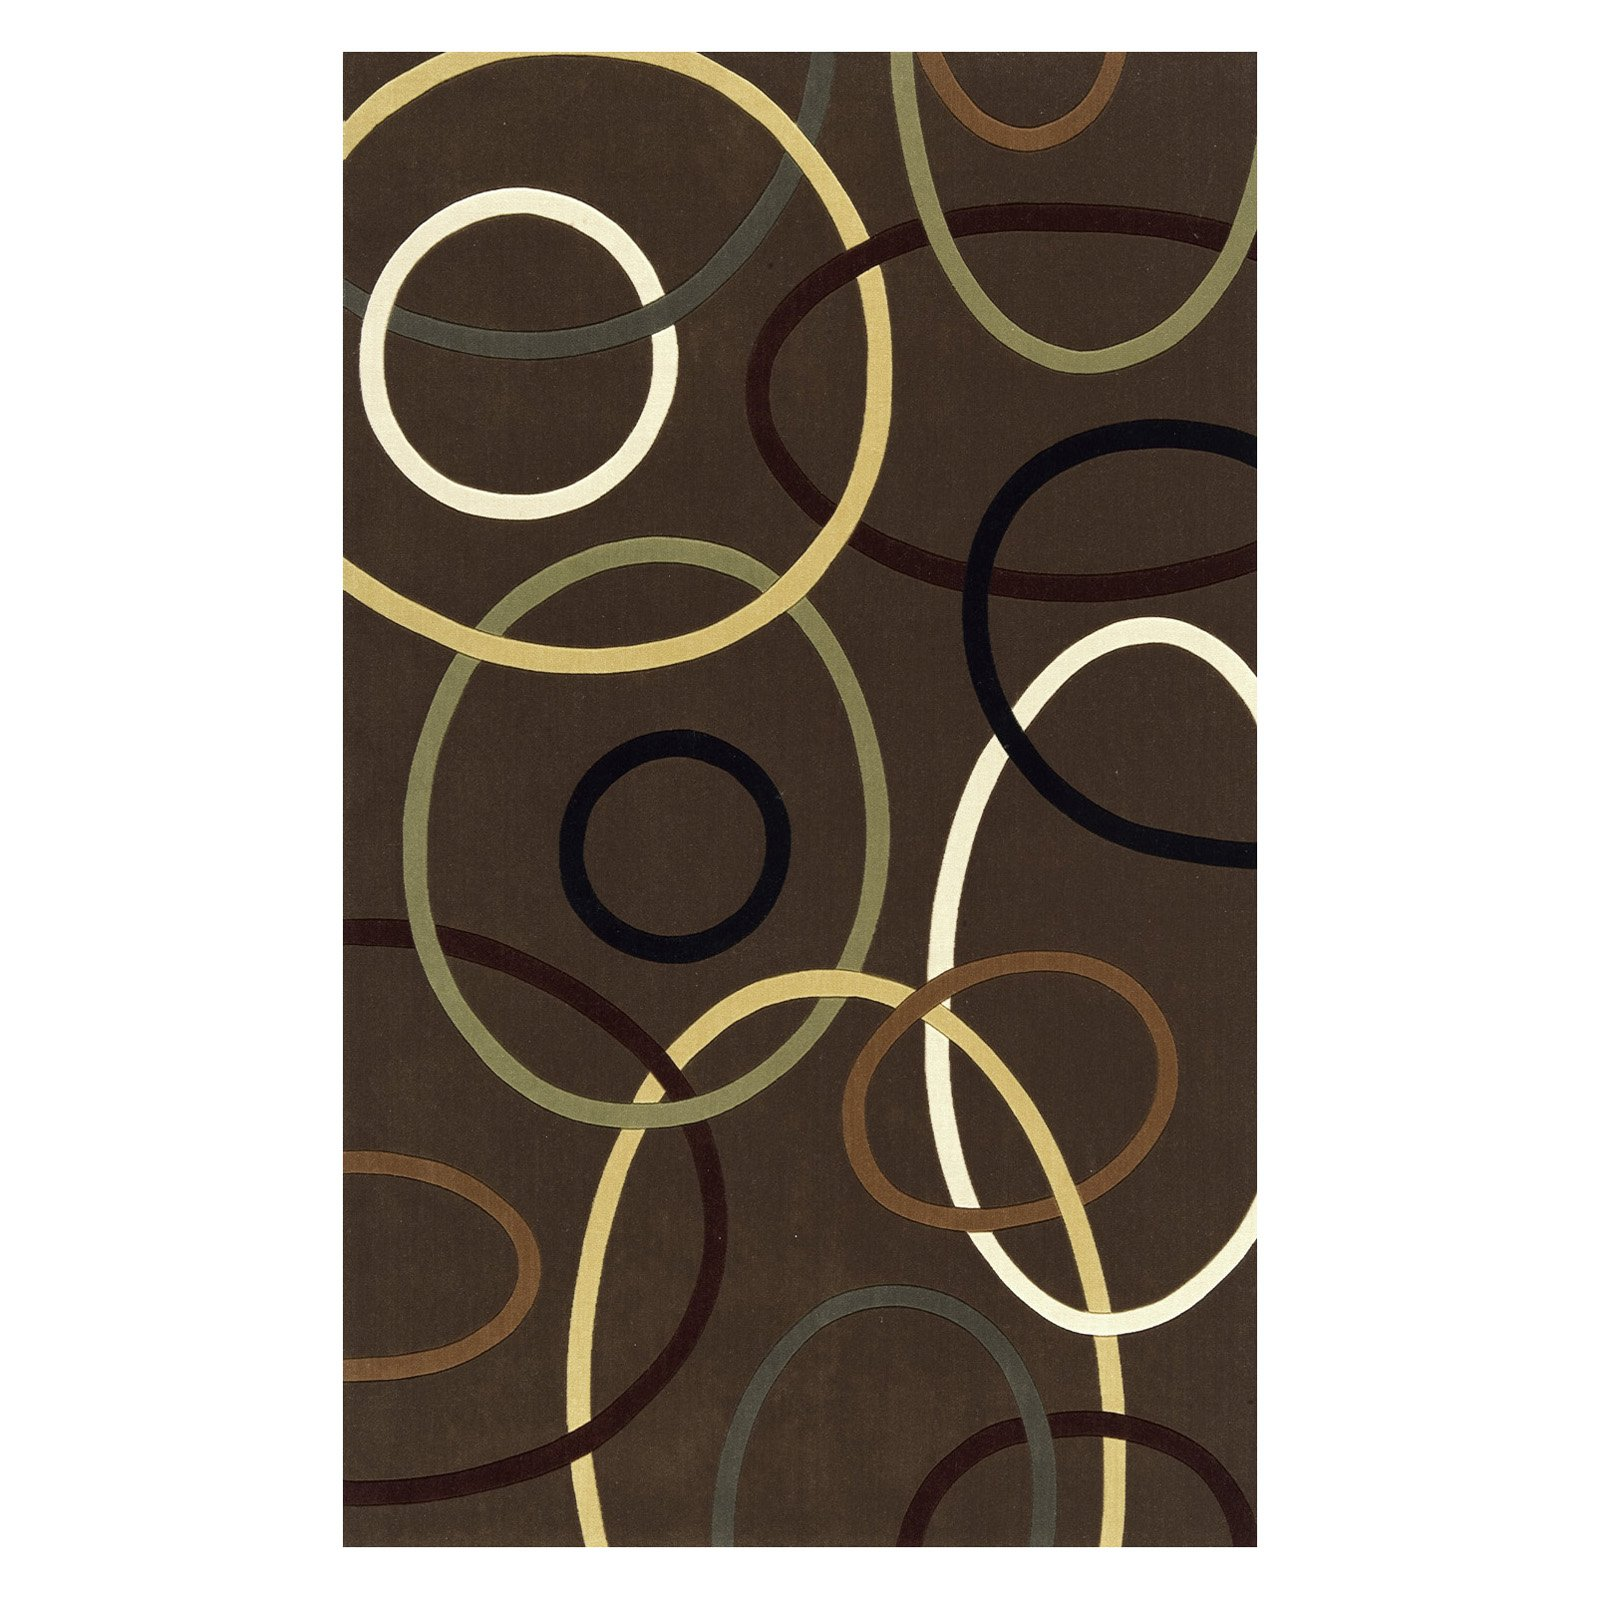 Momeni Elements Circular Envy Brown EL-09 Rug-9.6 x 13.6 ft. by Momeni